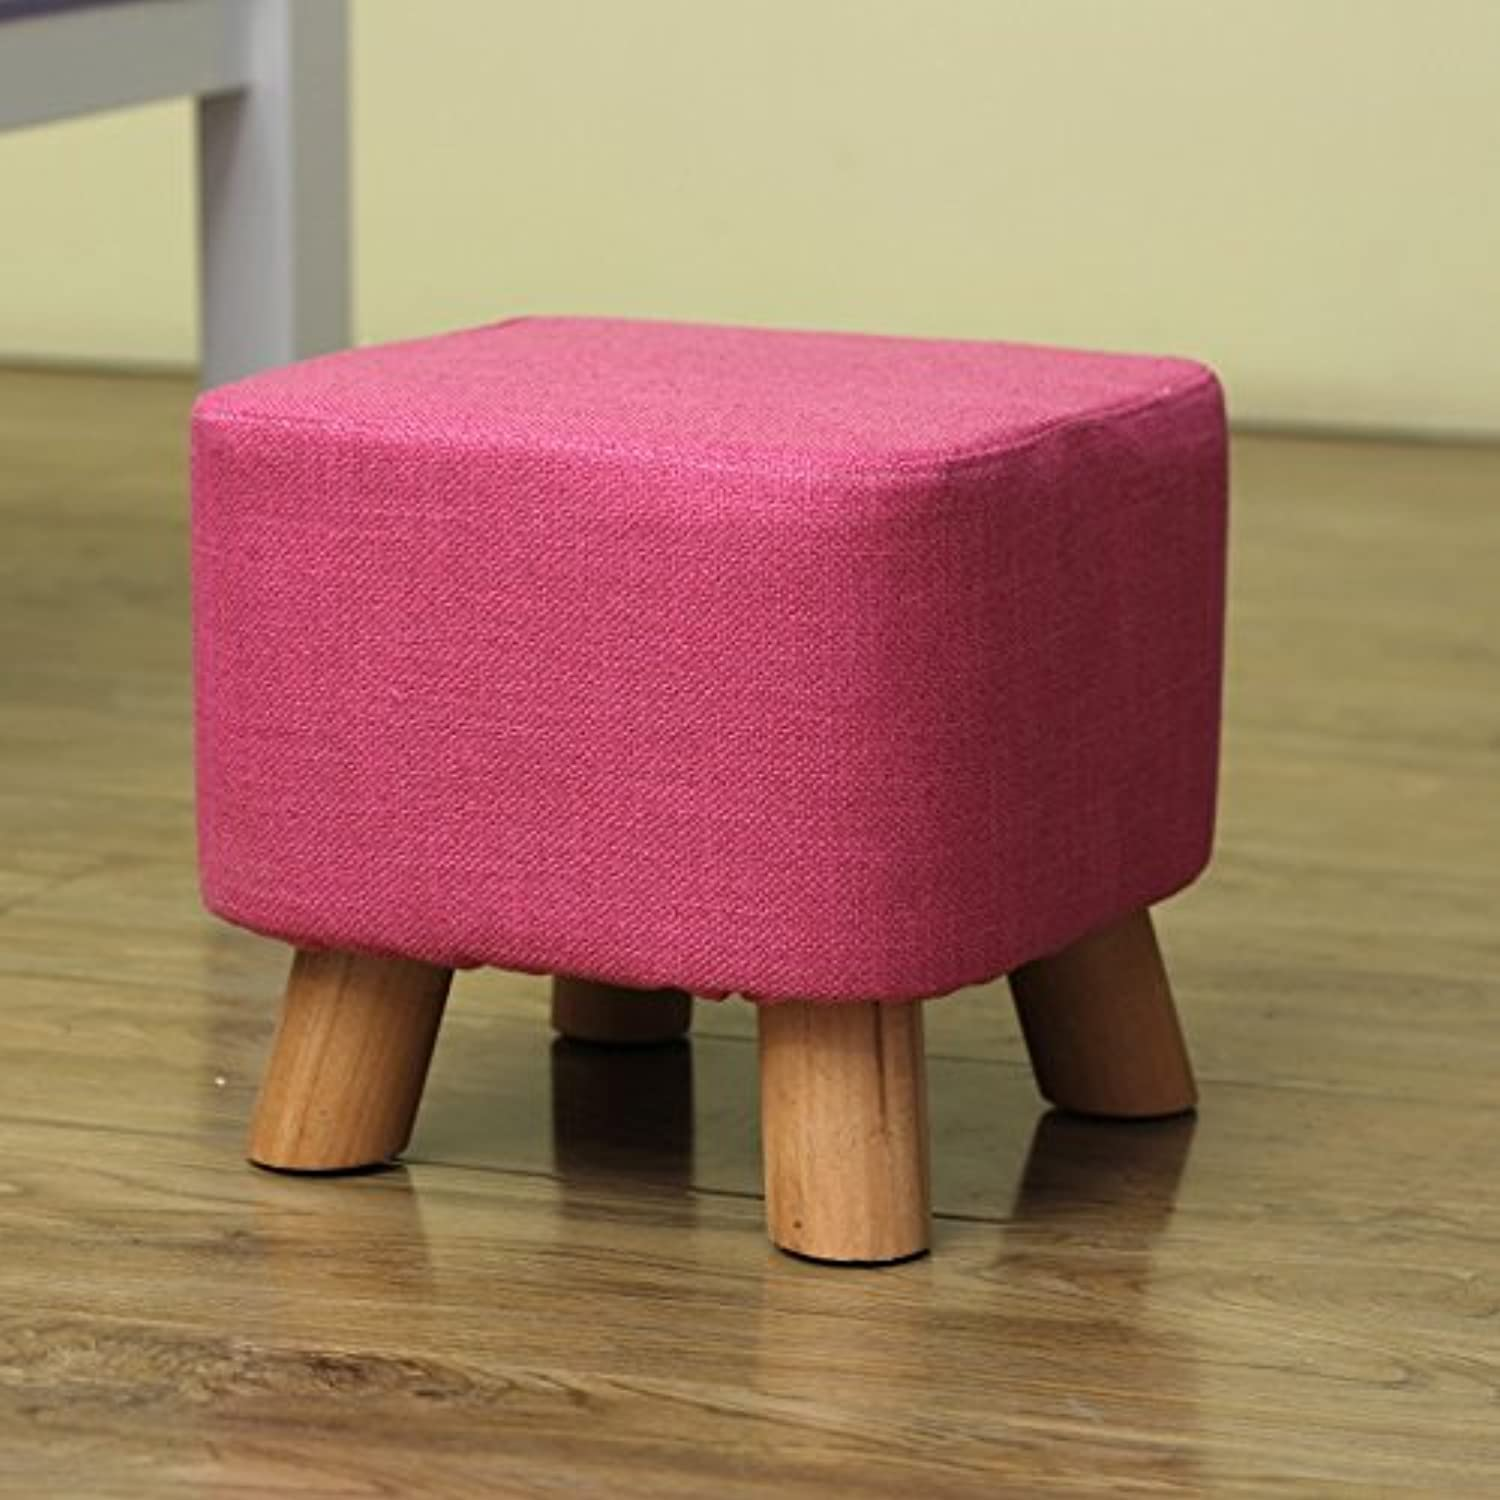 Dana Carrie Sofa Chairs Stylish and Creative Party stool Solid Wood Changing shoes stool Dressing Bench wear shoes Bench Seating, Coffee is Served by The Implementation of The Footstool, Red